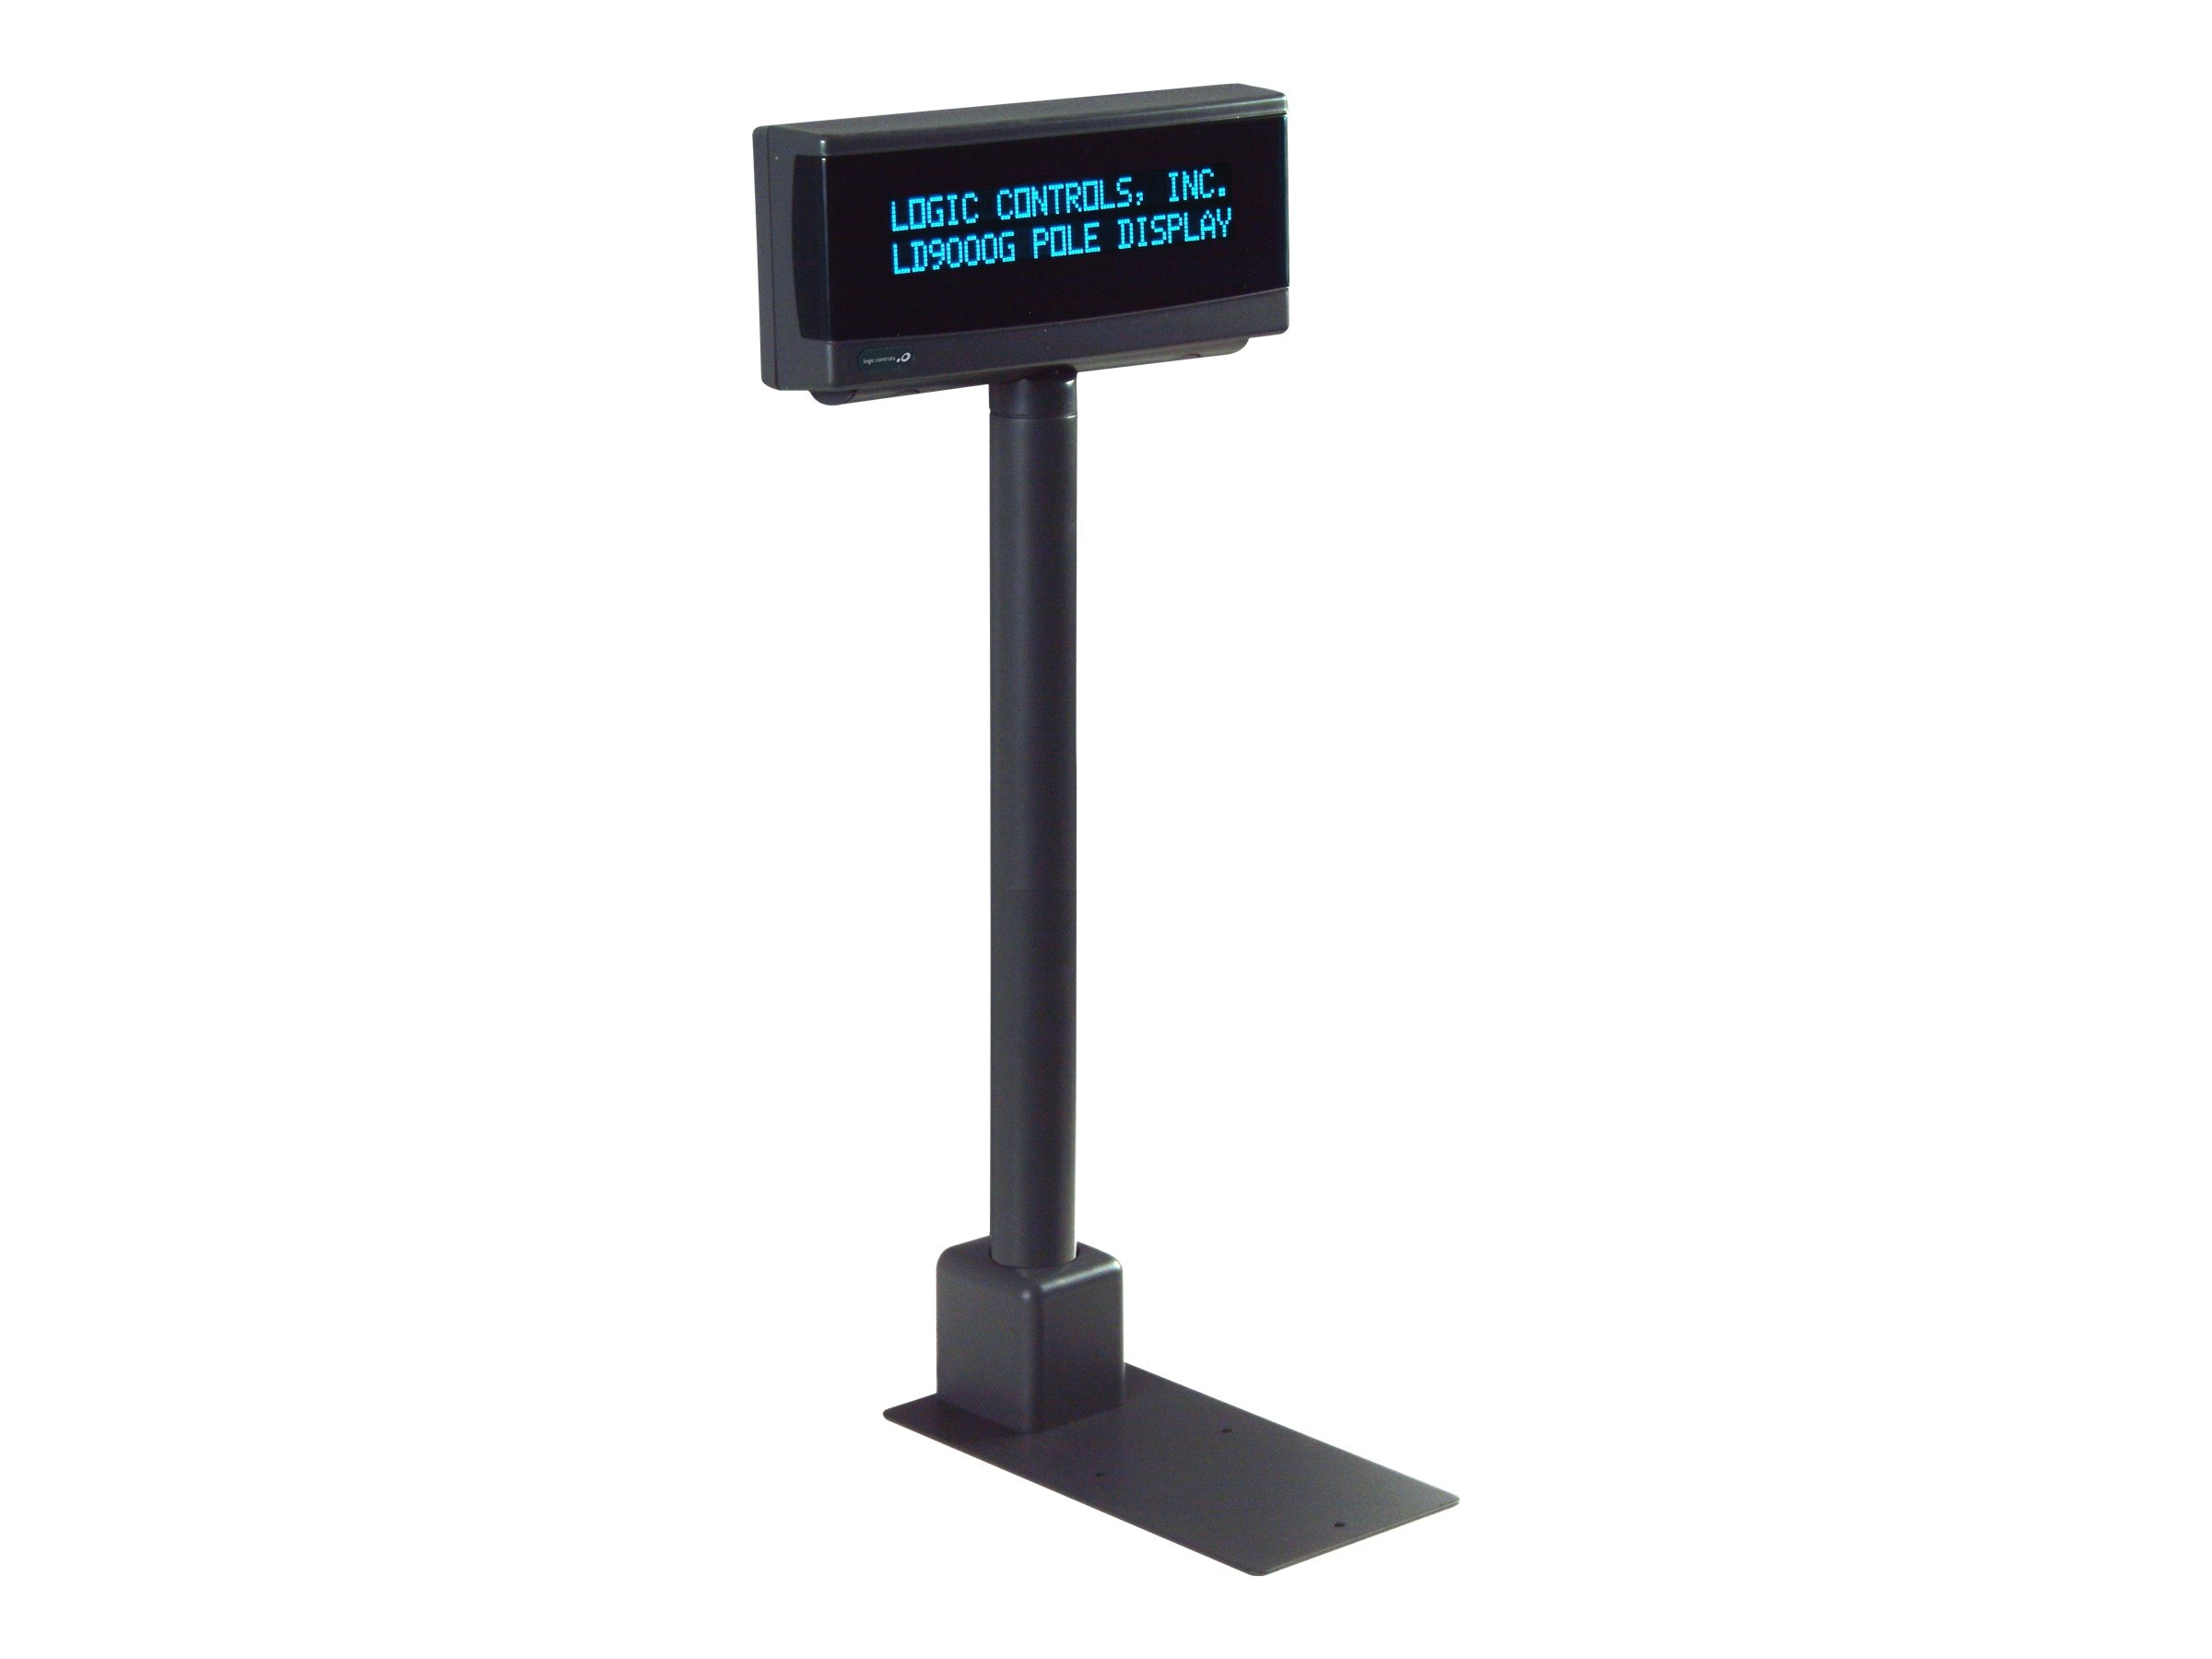 Logic Controls Bematech Pole Display, 9.5mm 2x20, USB, Dark Gray, LDX9000U-GY